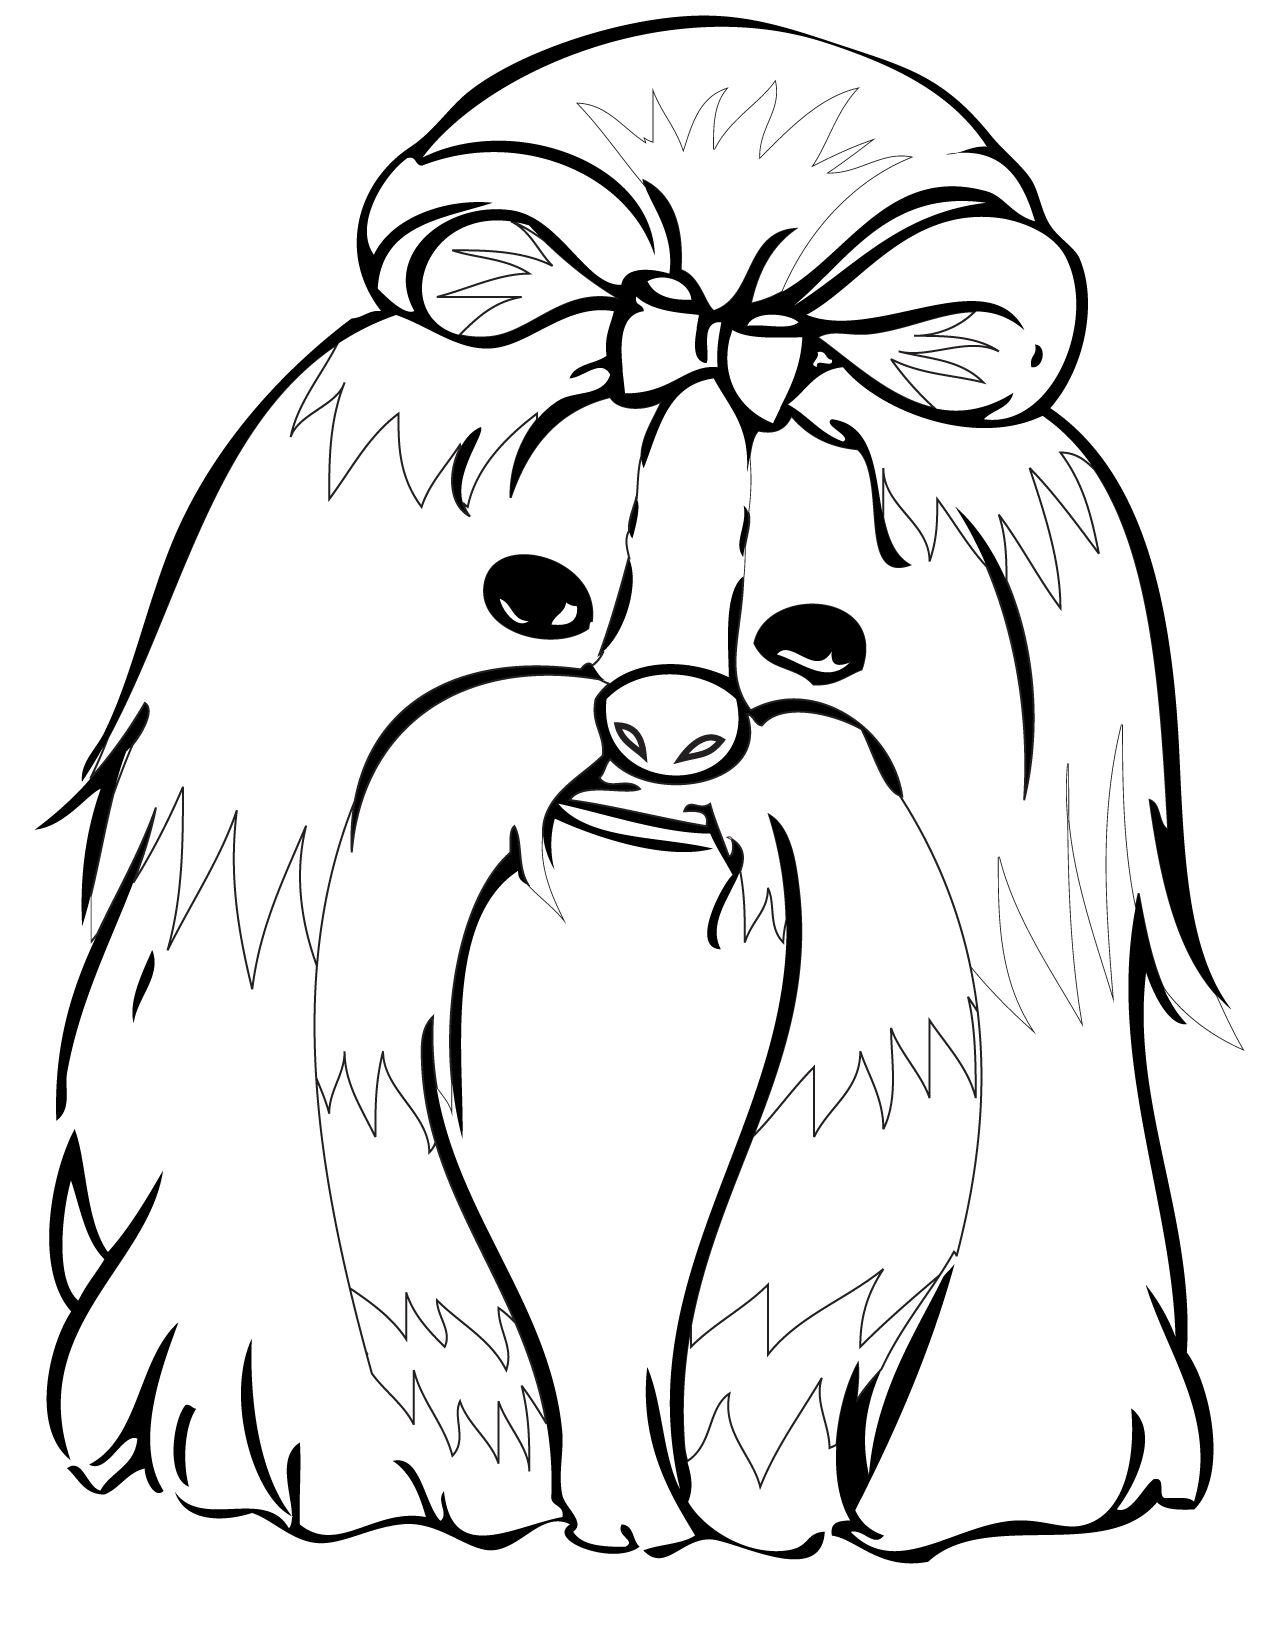 dog color pages printable | Print This Page | Dogs Coloring Pages ...